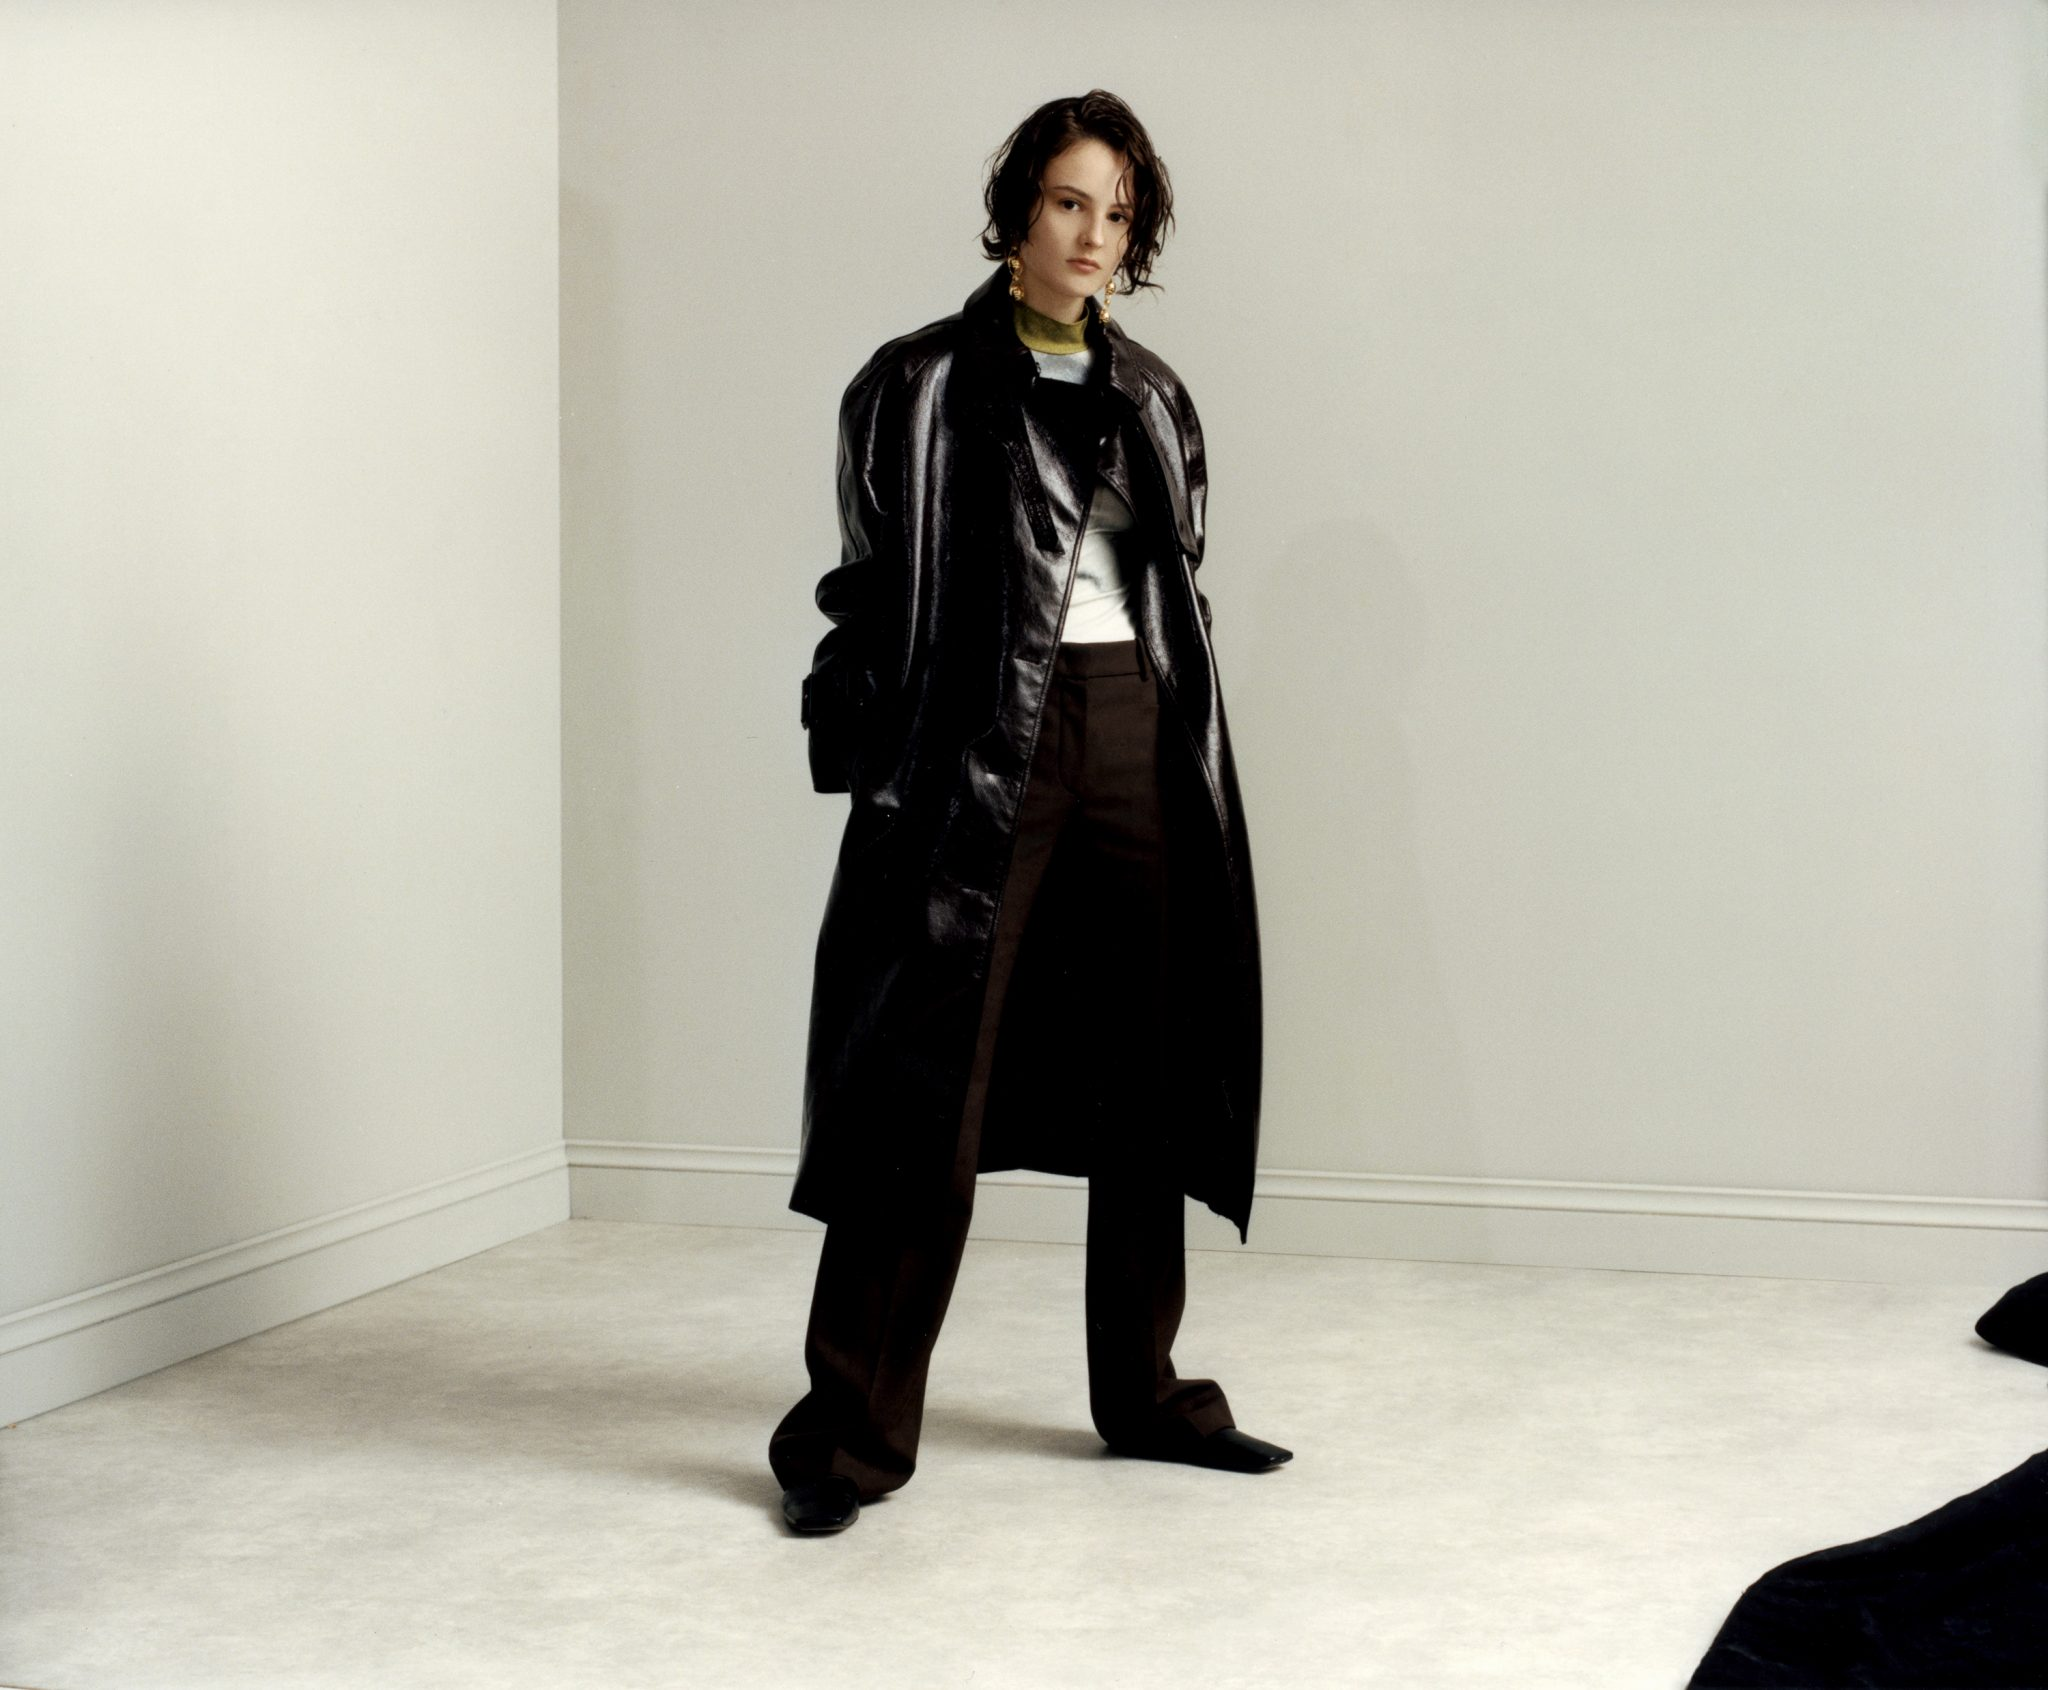 jack grange jungle magazine fashion editorial black coat